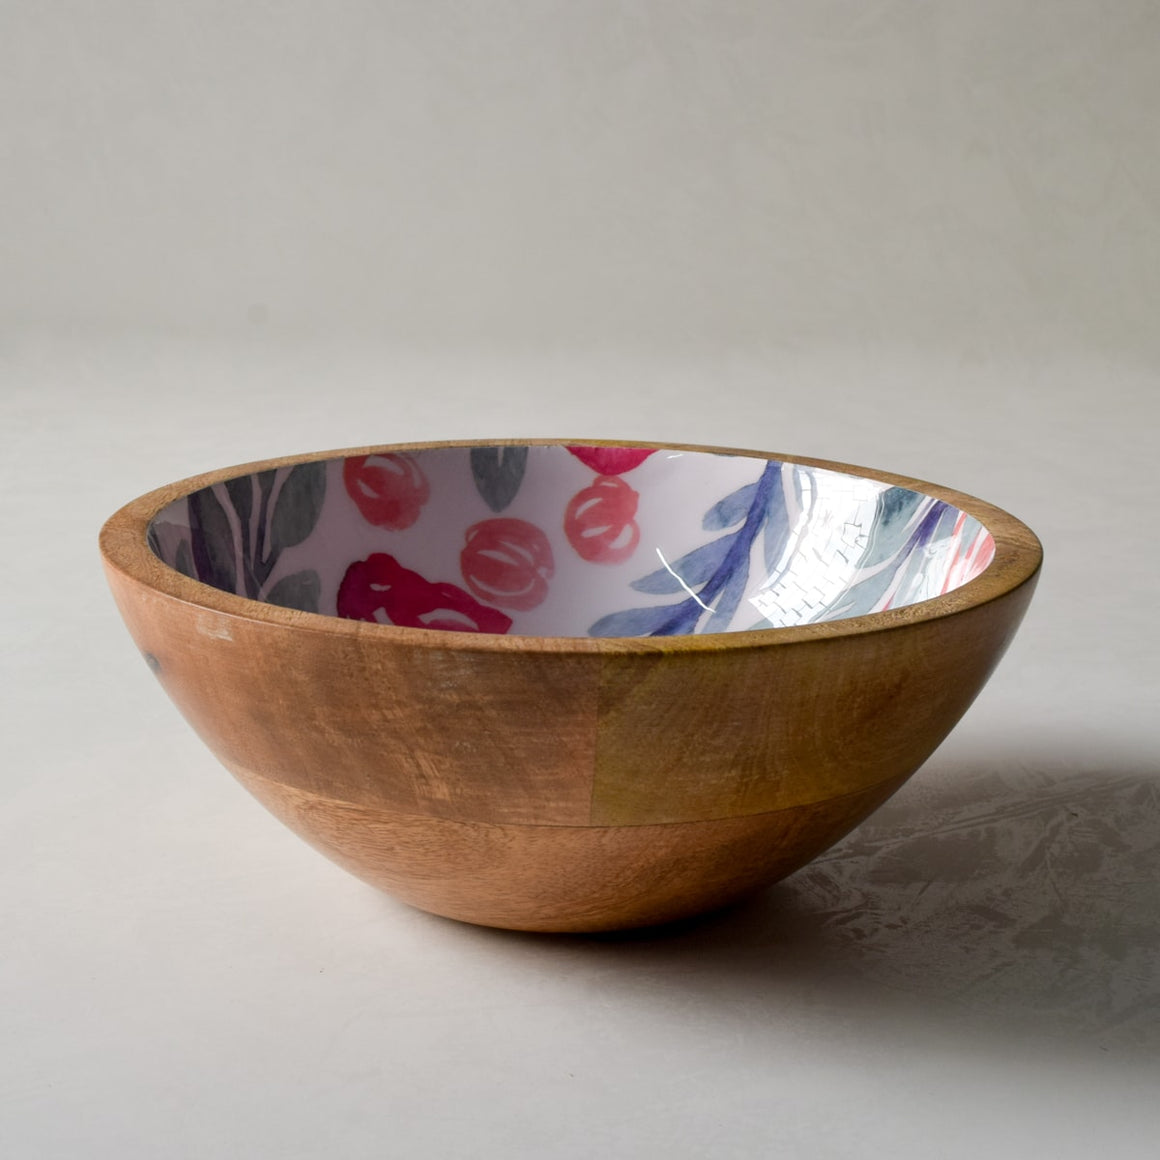 Priscilla Mango Wood Bowl with Floral Pattern